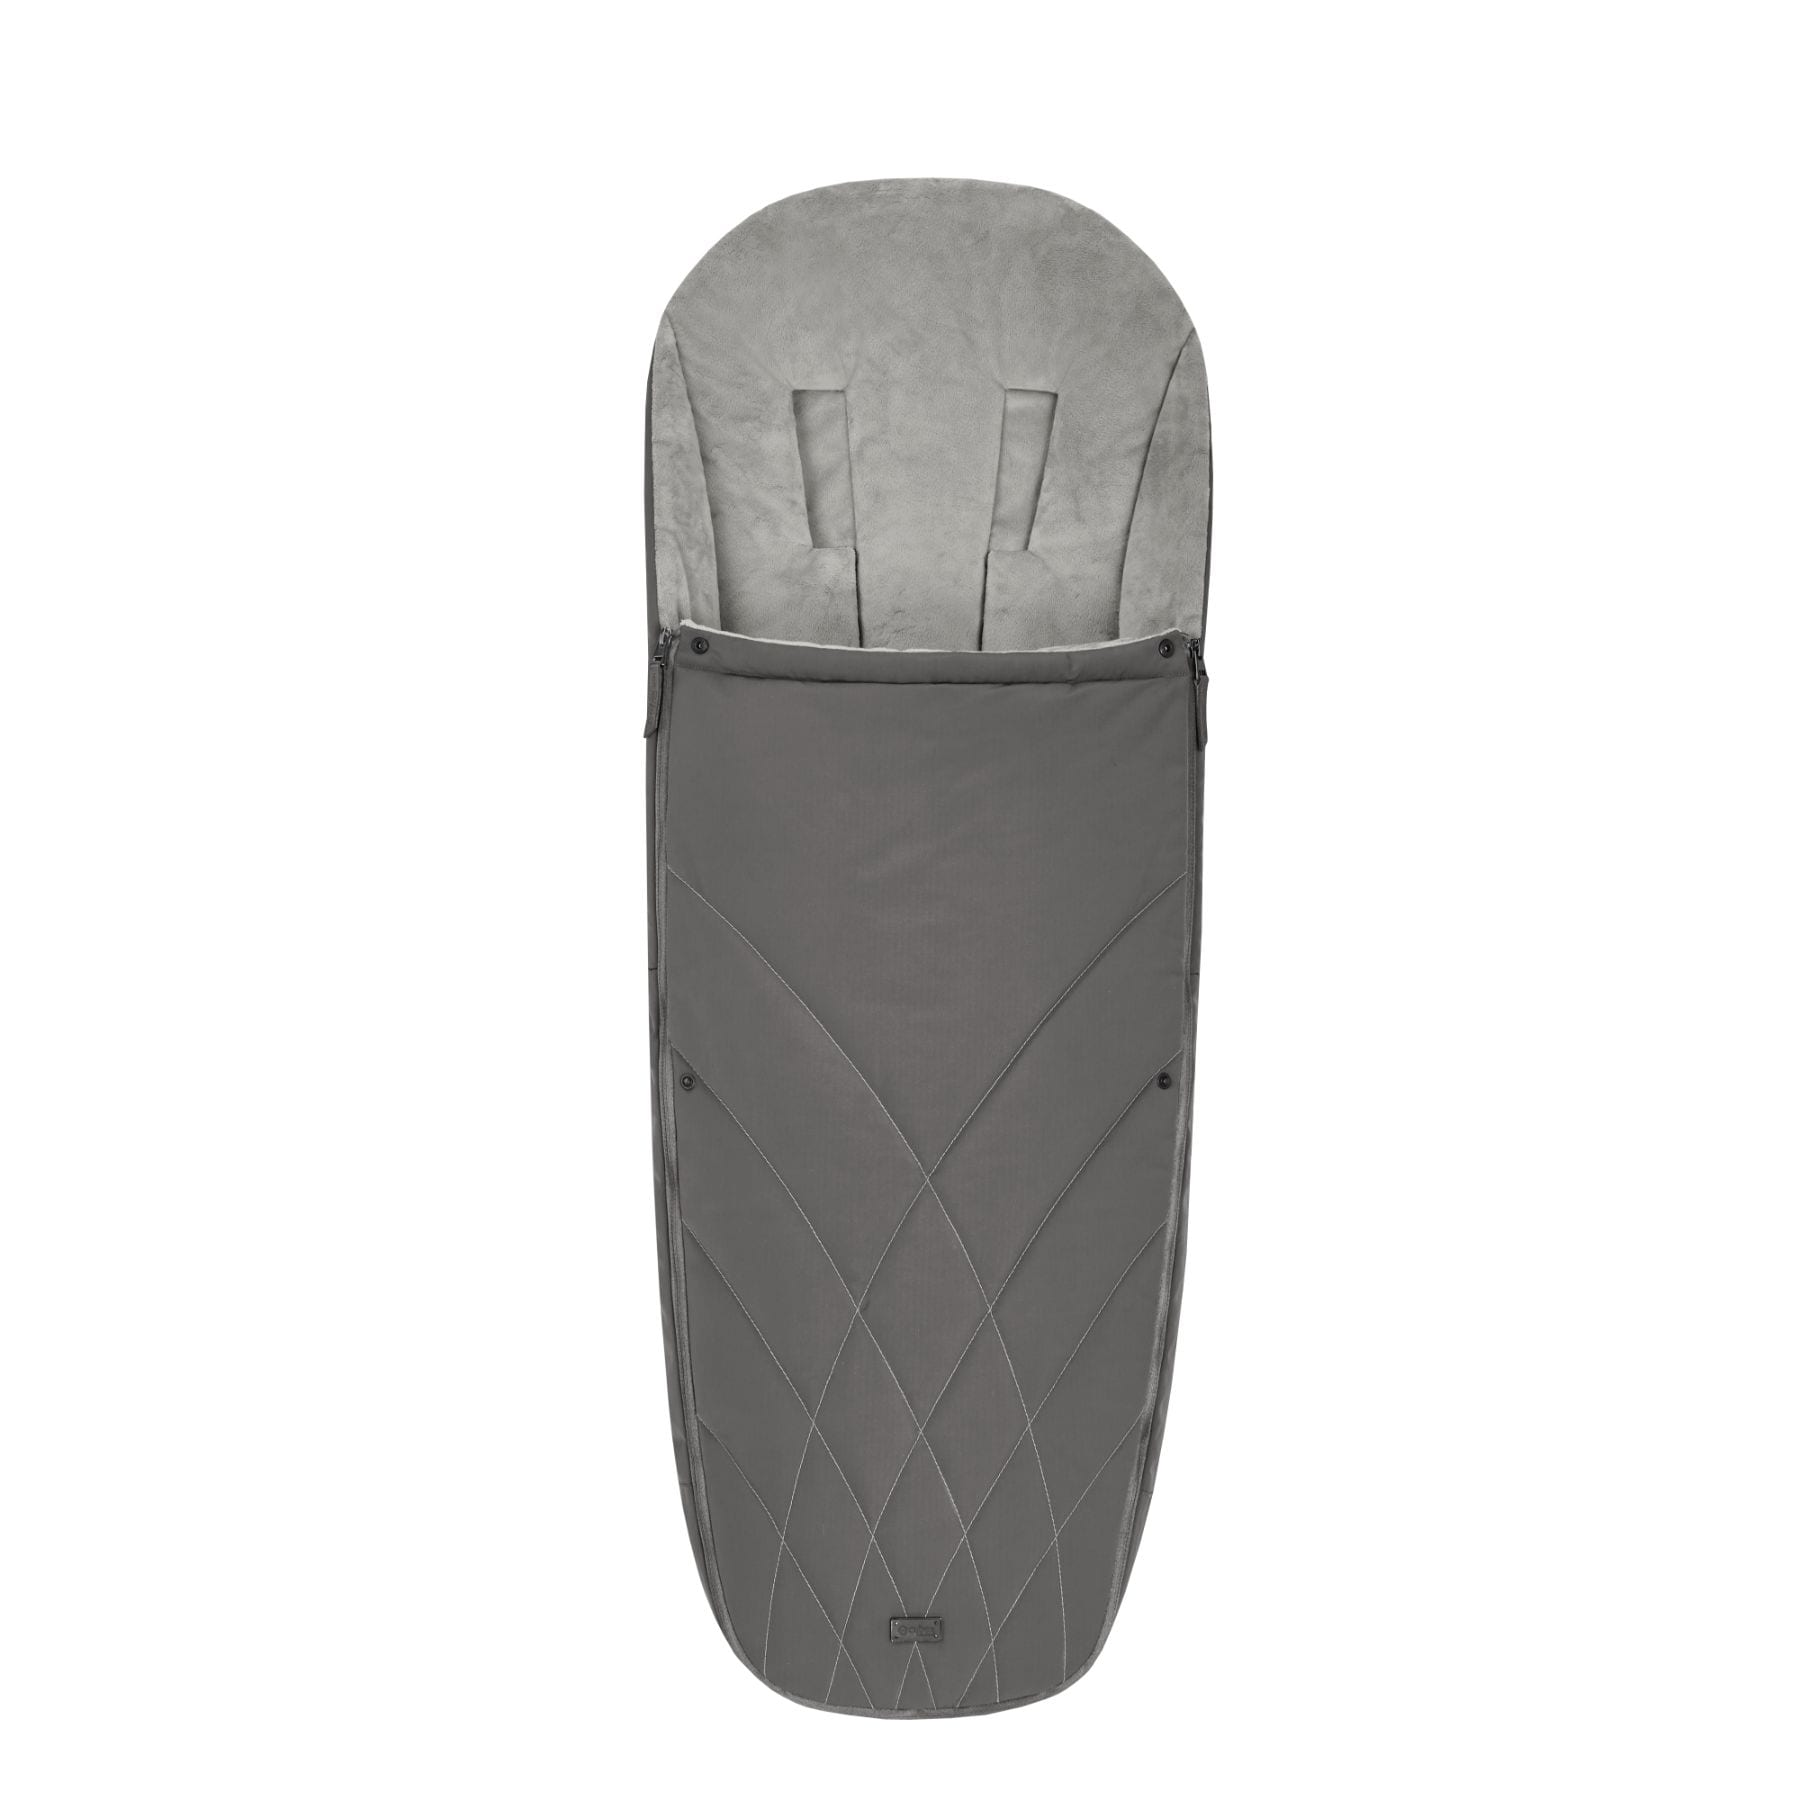 Cybex Platinum Footmuff - Soho Grey